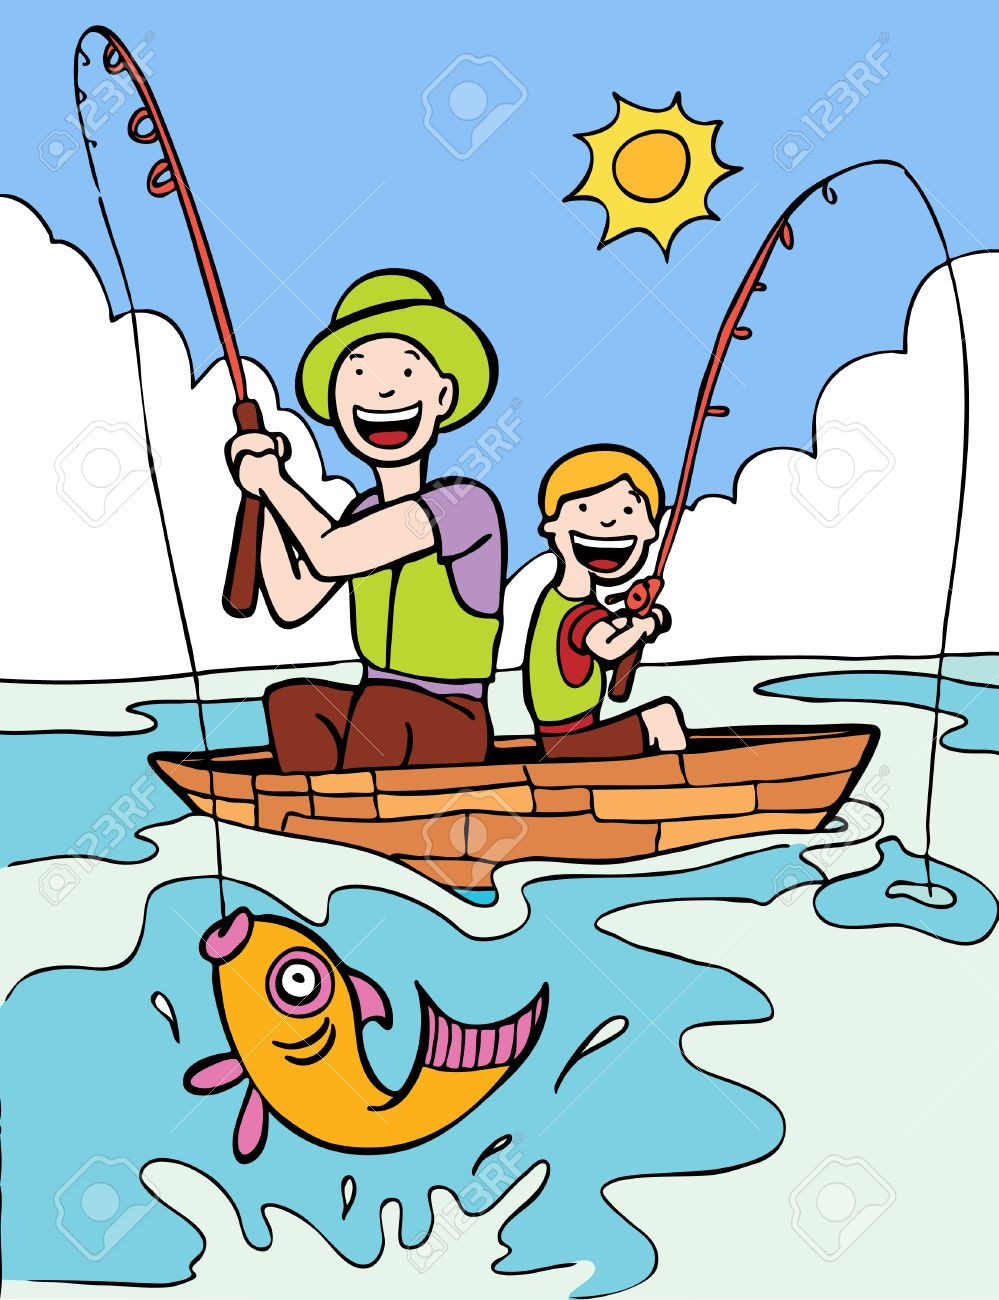 Image result for fishing cartoon image